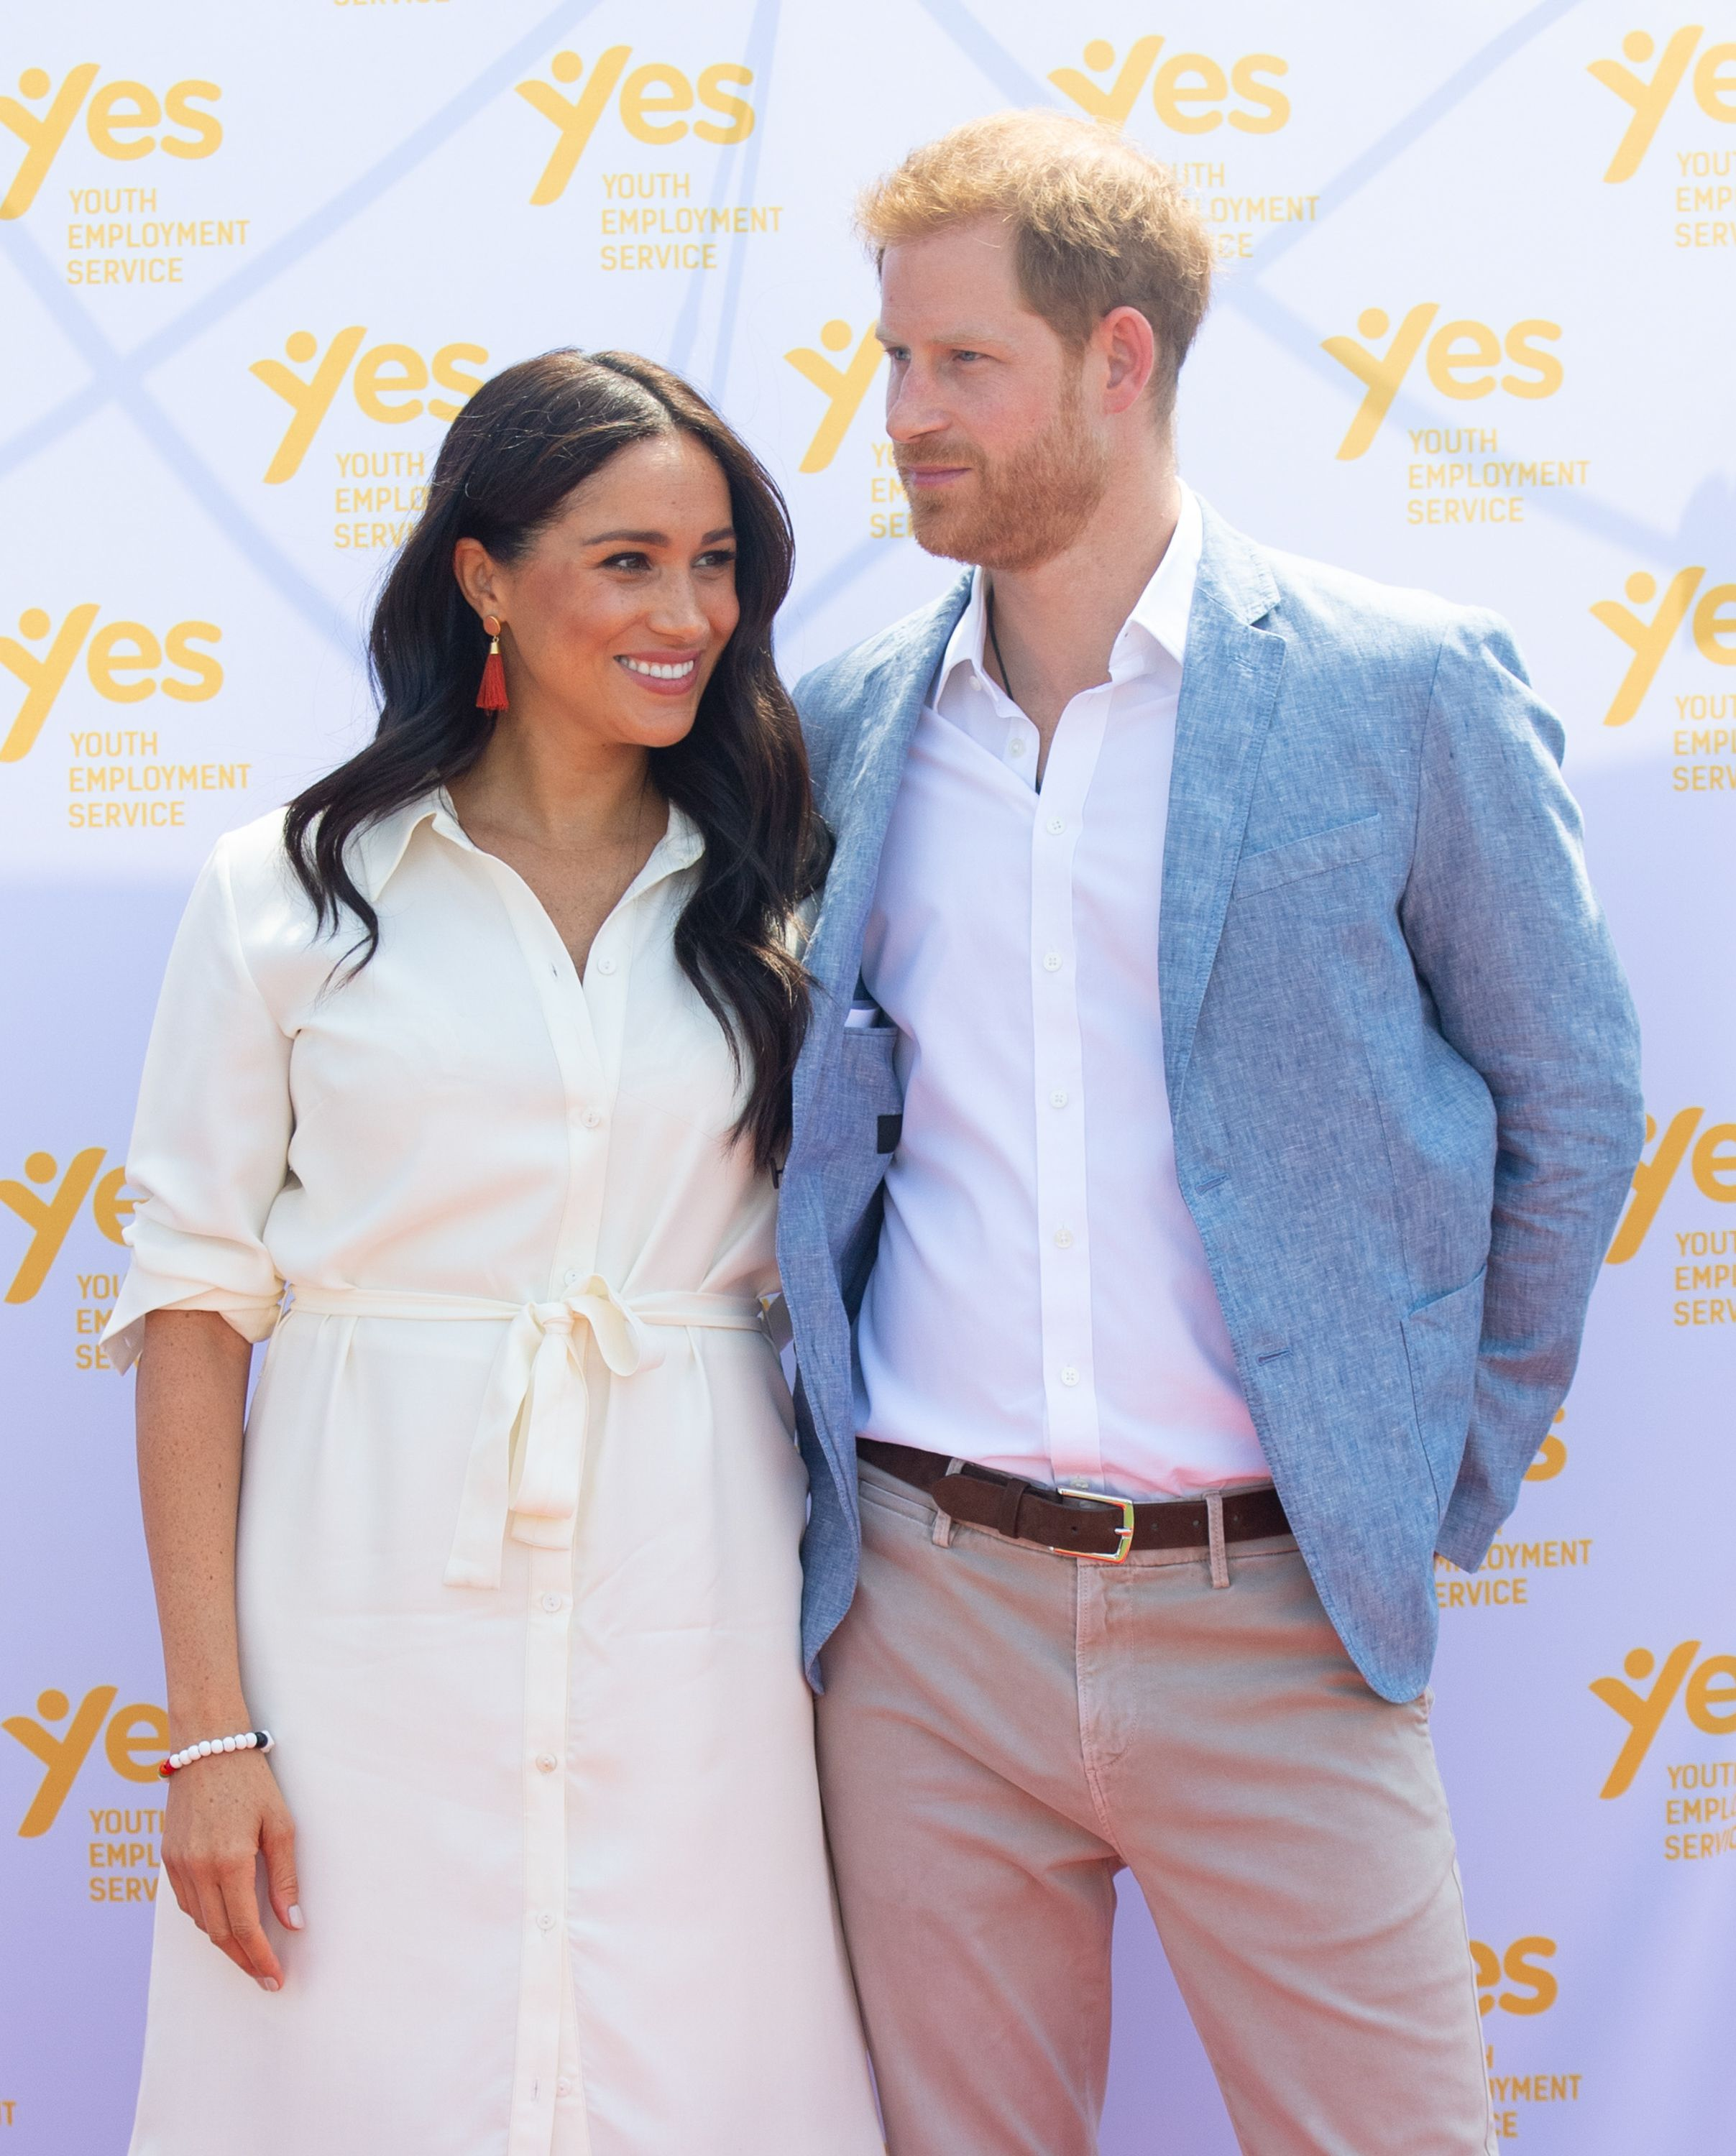 Prince Harry Suggests He and Meghan Markle May Move to Africa